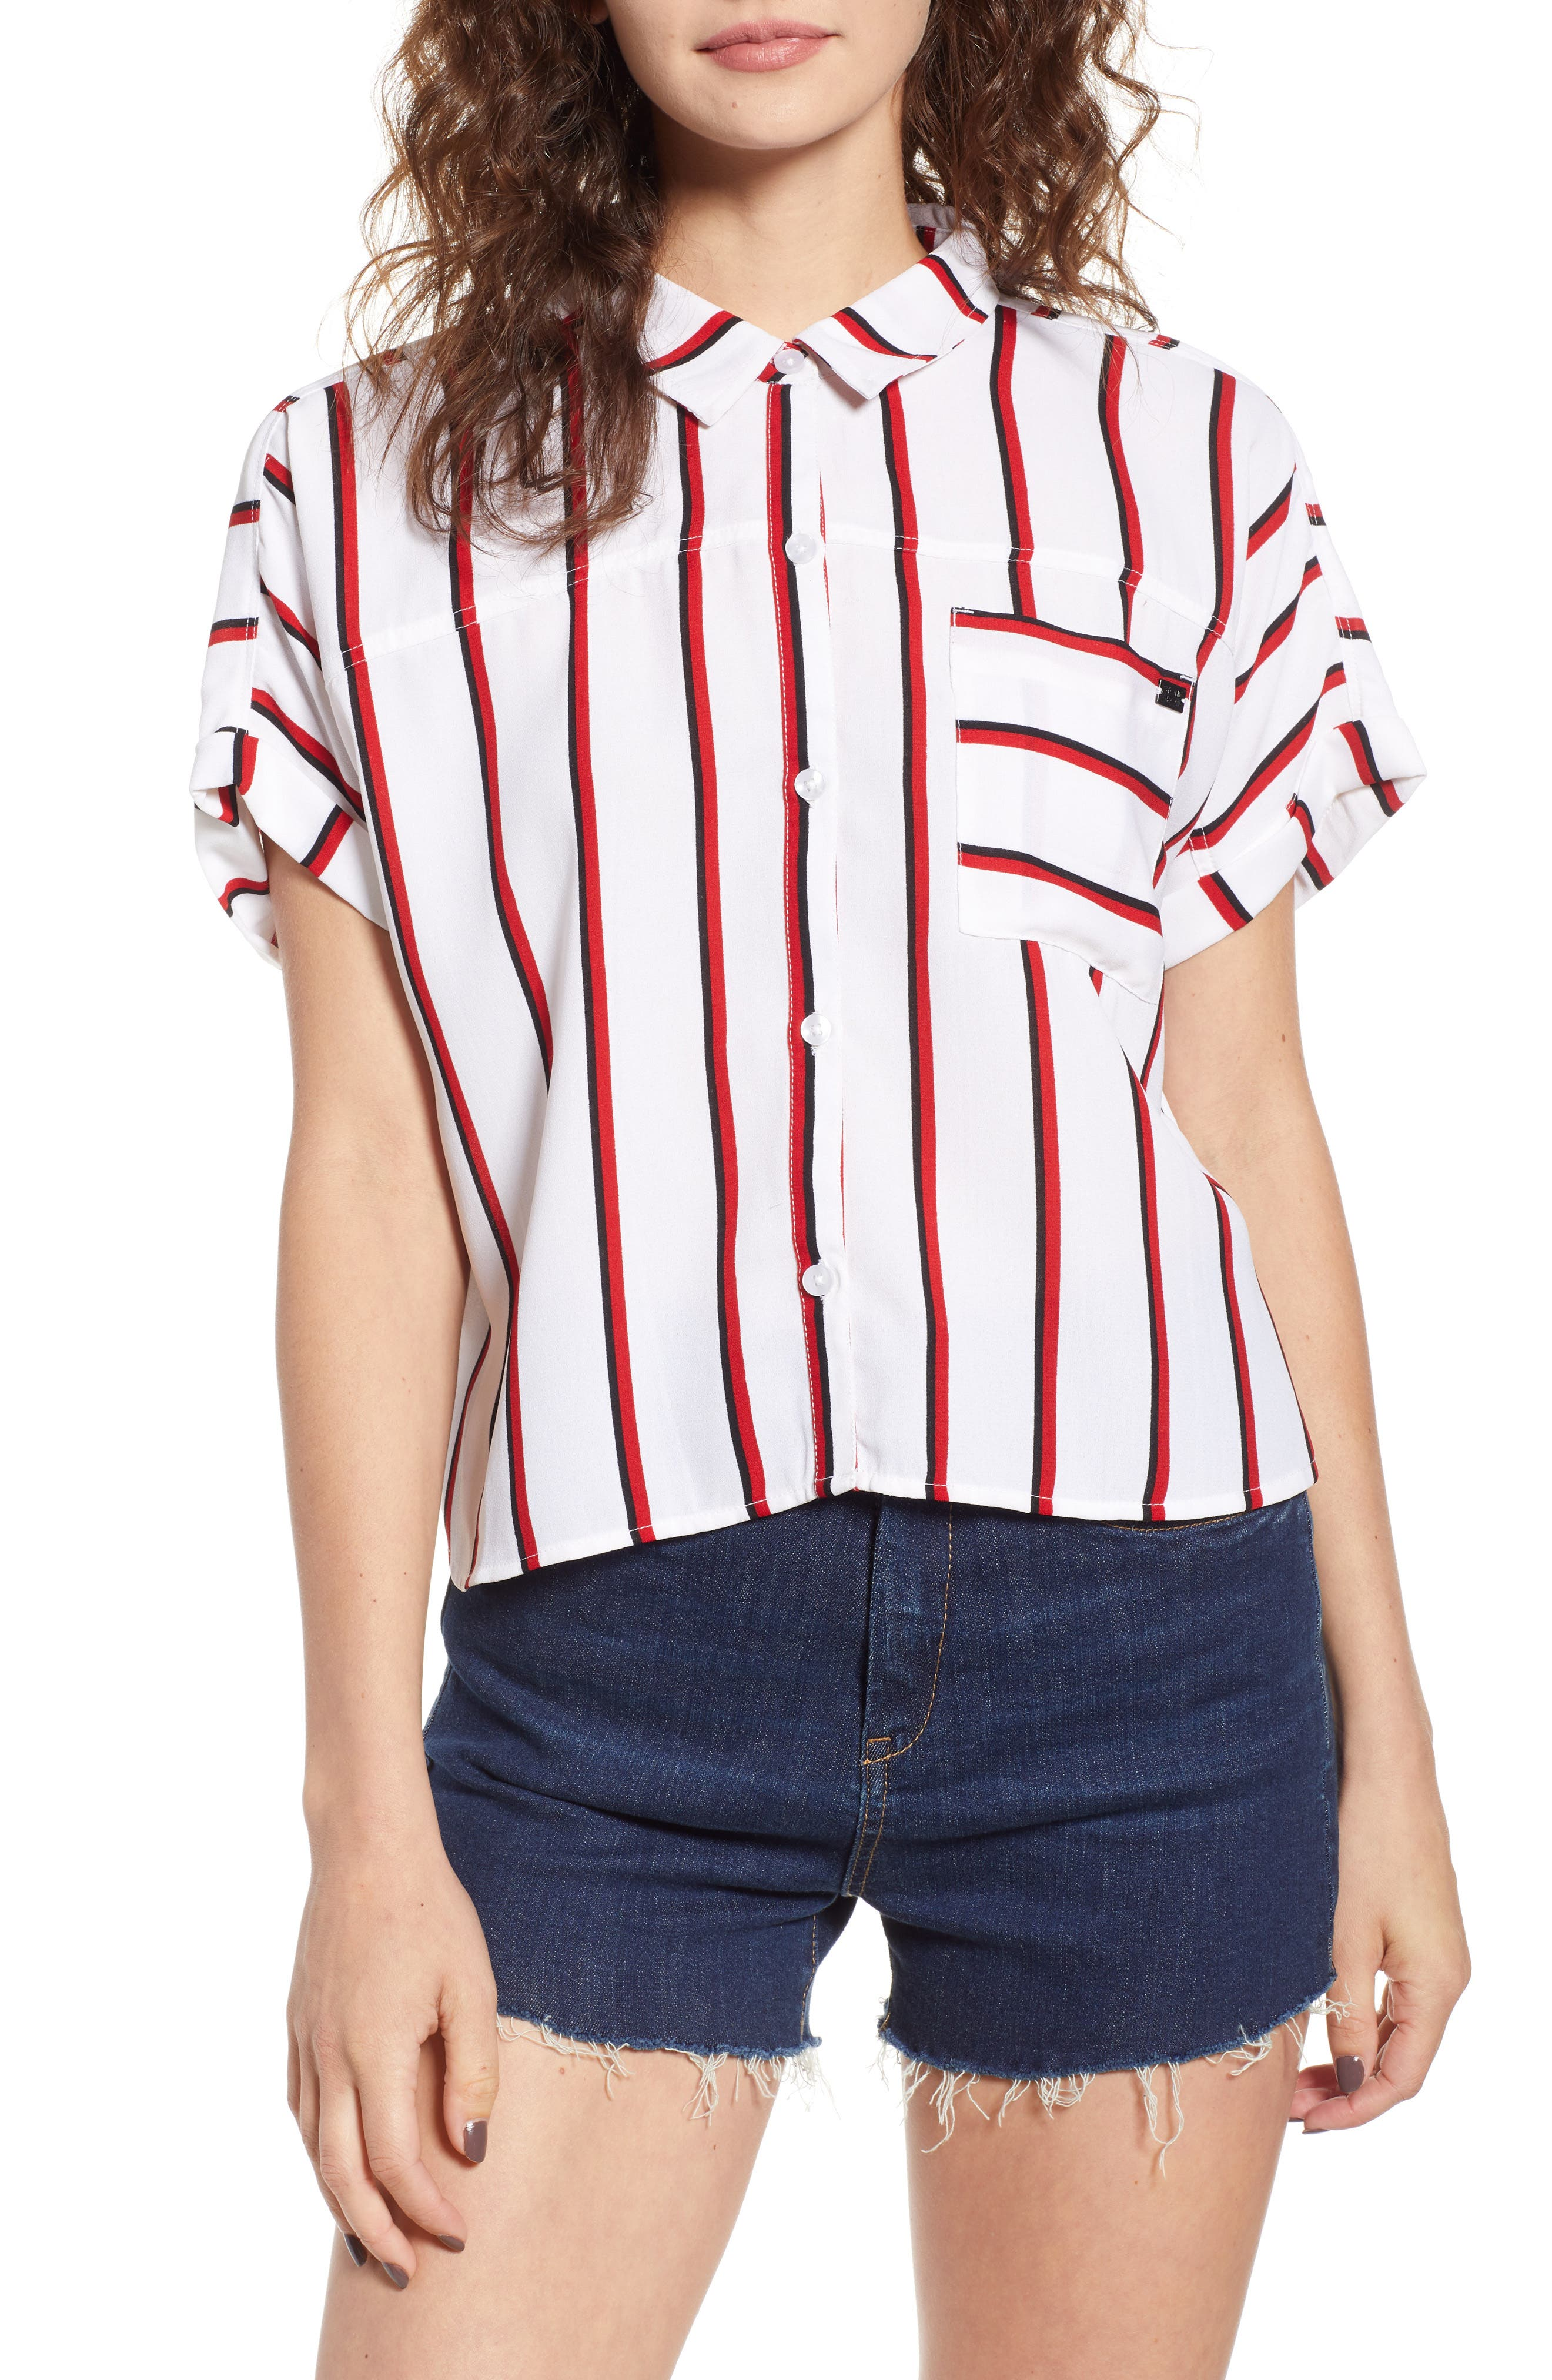 Counting Moons Stripe Top,                         Main,                         color, Chili Red